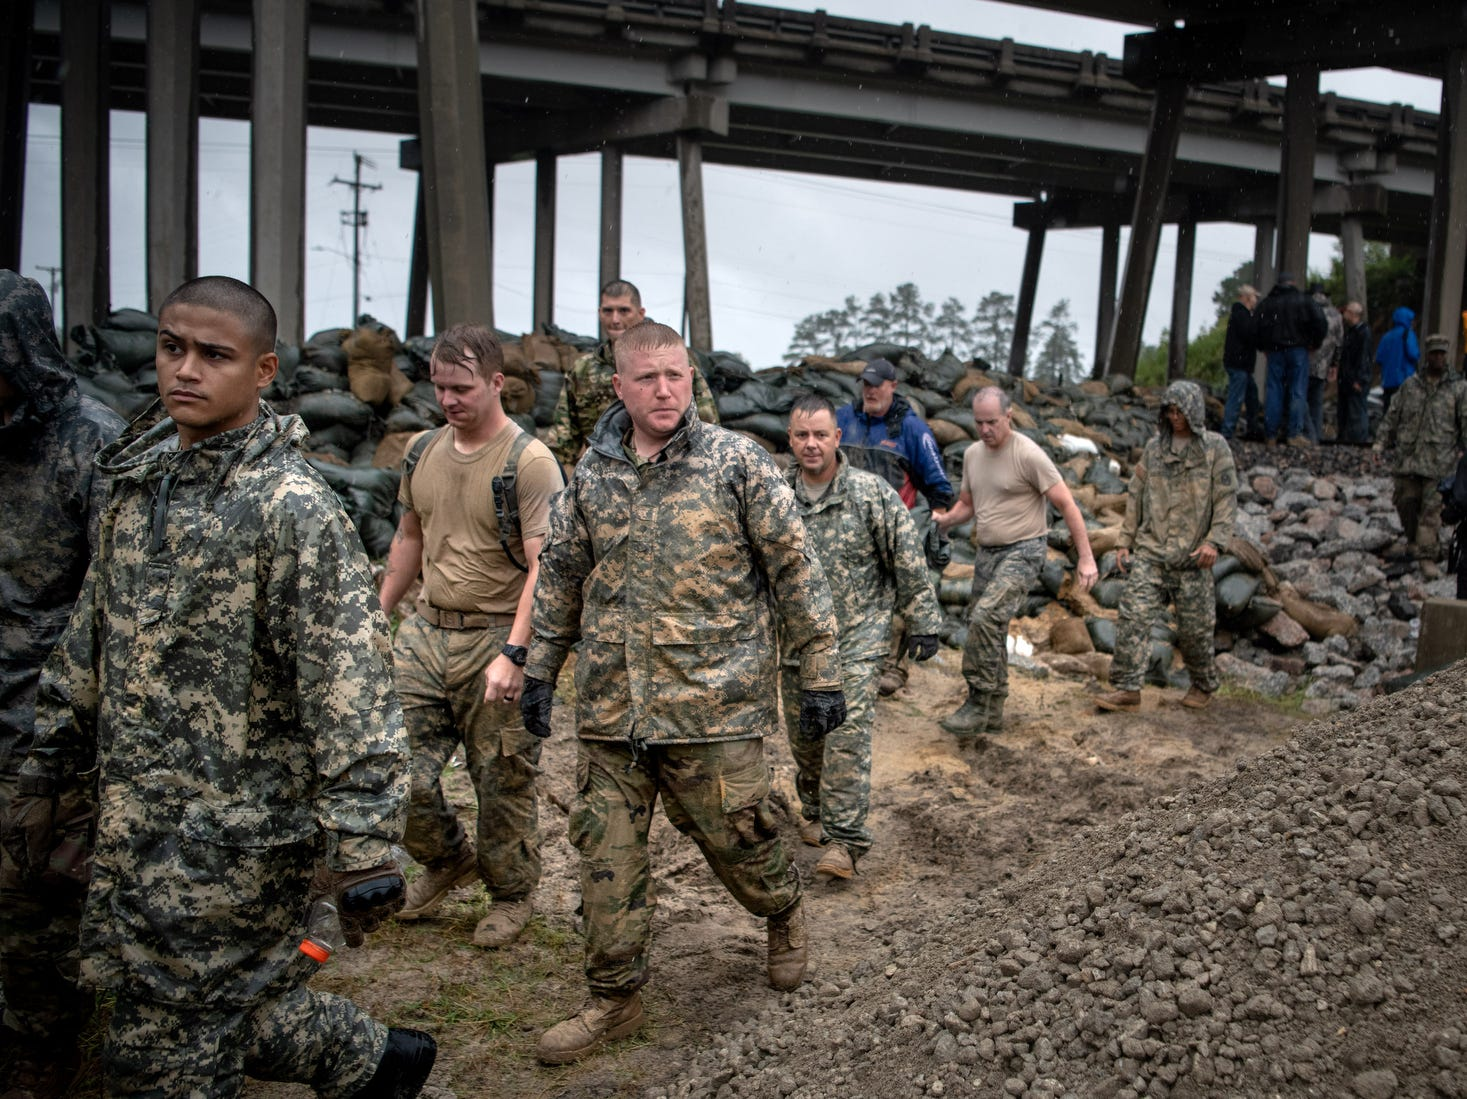 Soldiers from the North Carolina National Guard depart after reinforcing a low-lying area with sandbags as Hurricane Florence approaches Lumberton, N.C..